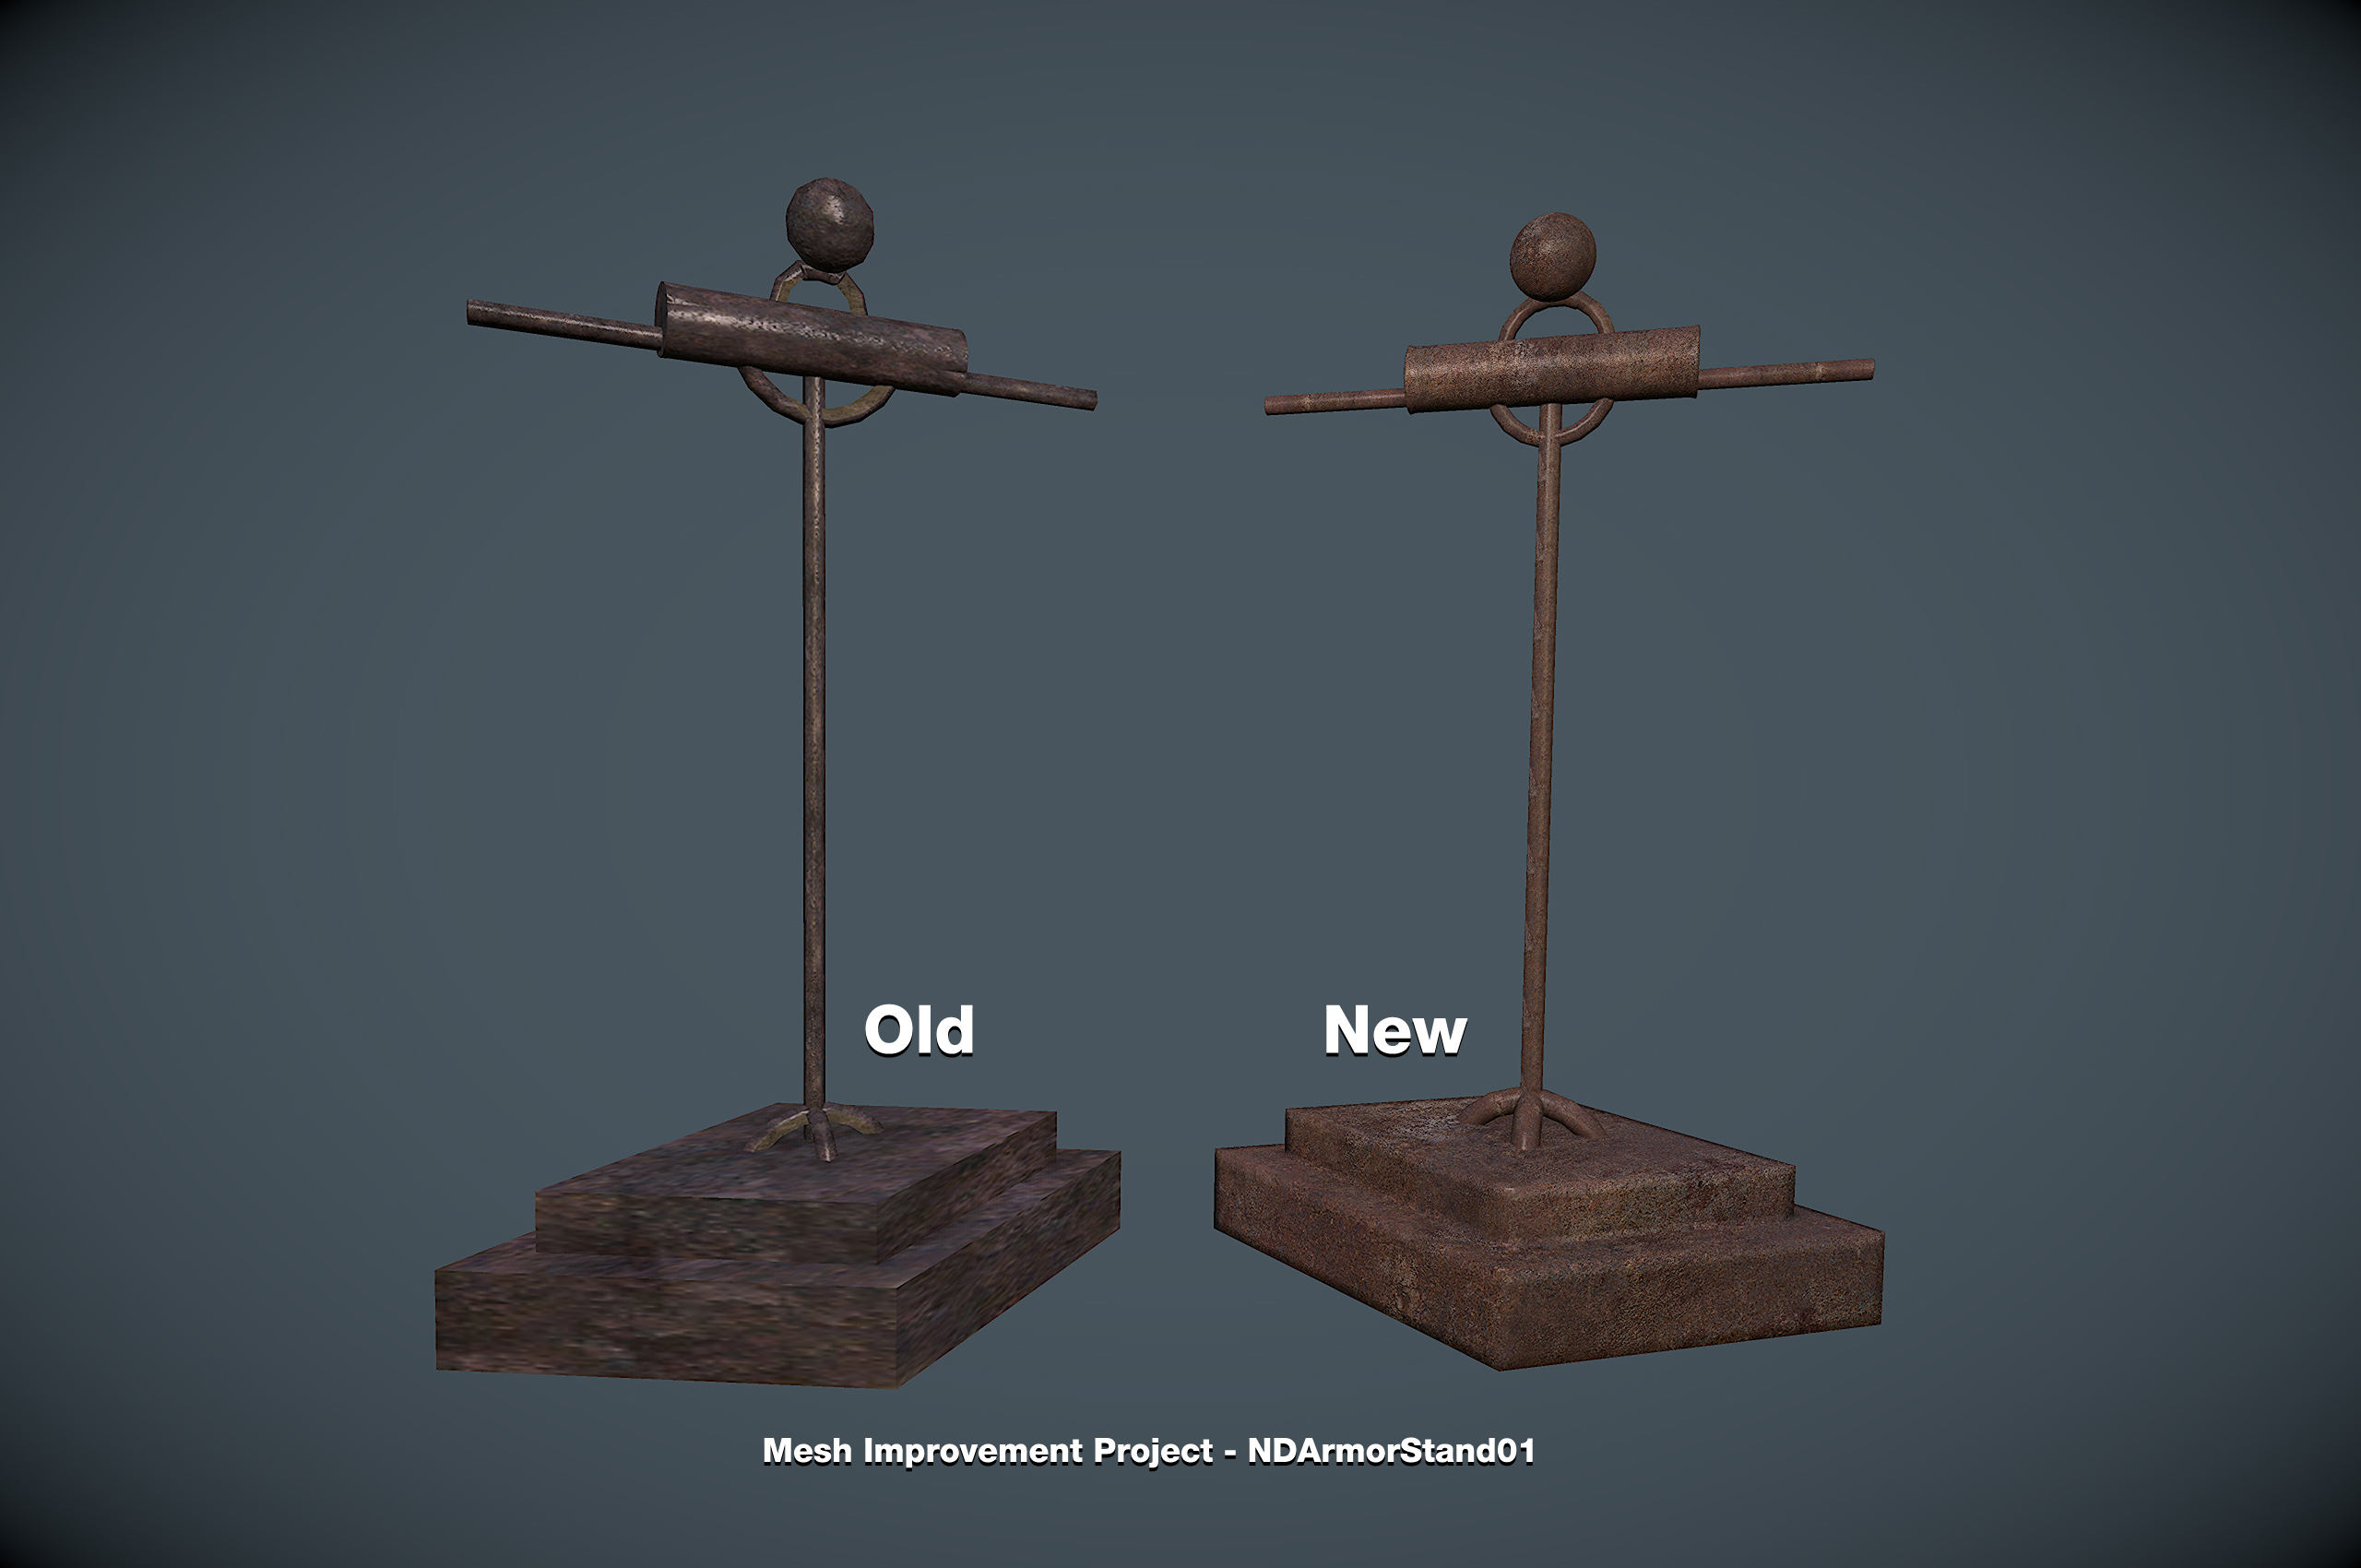 Mesh Improvement Project - NDArmorStand01